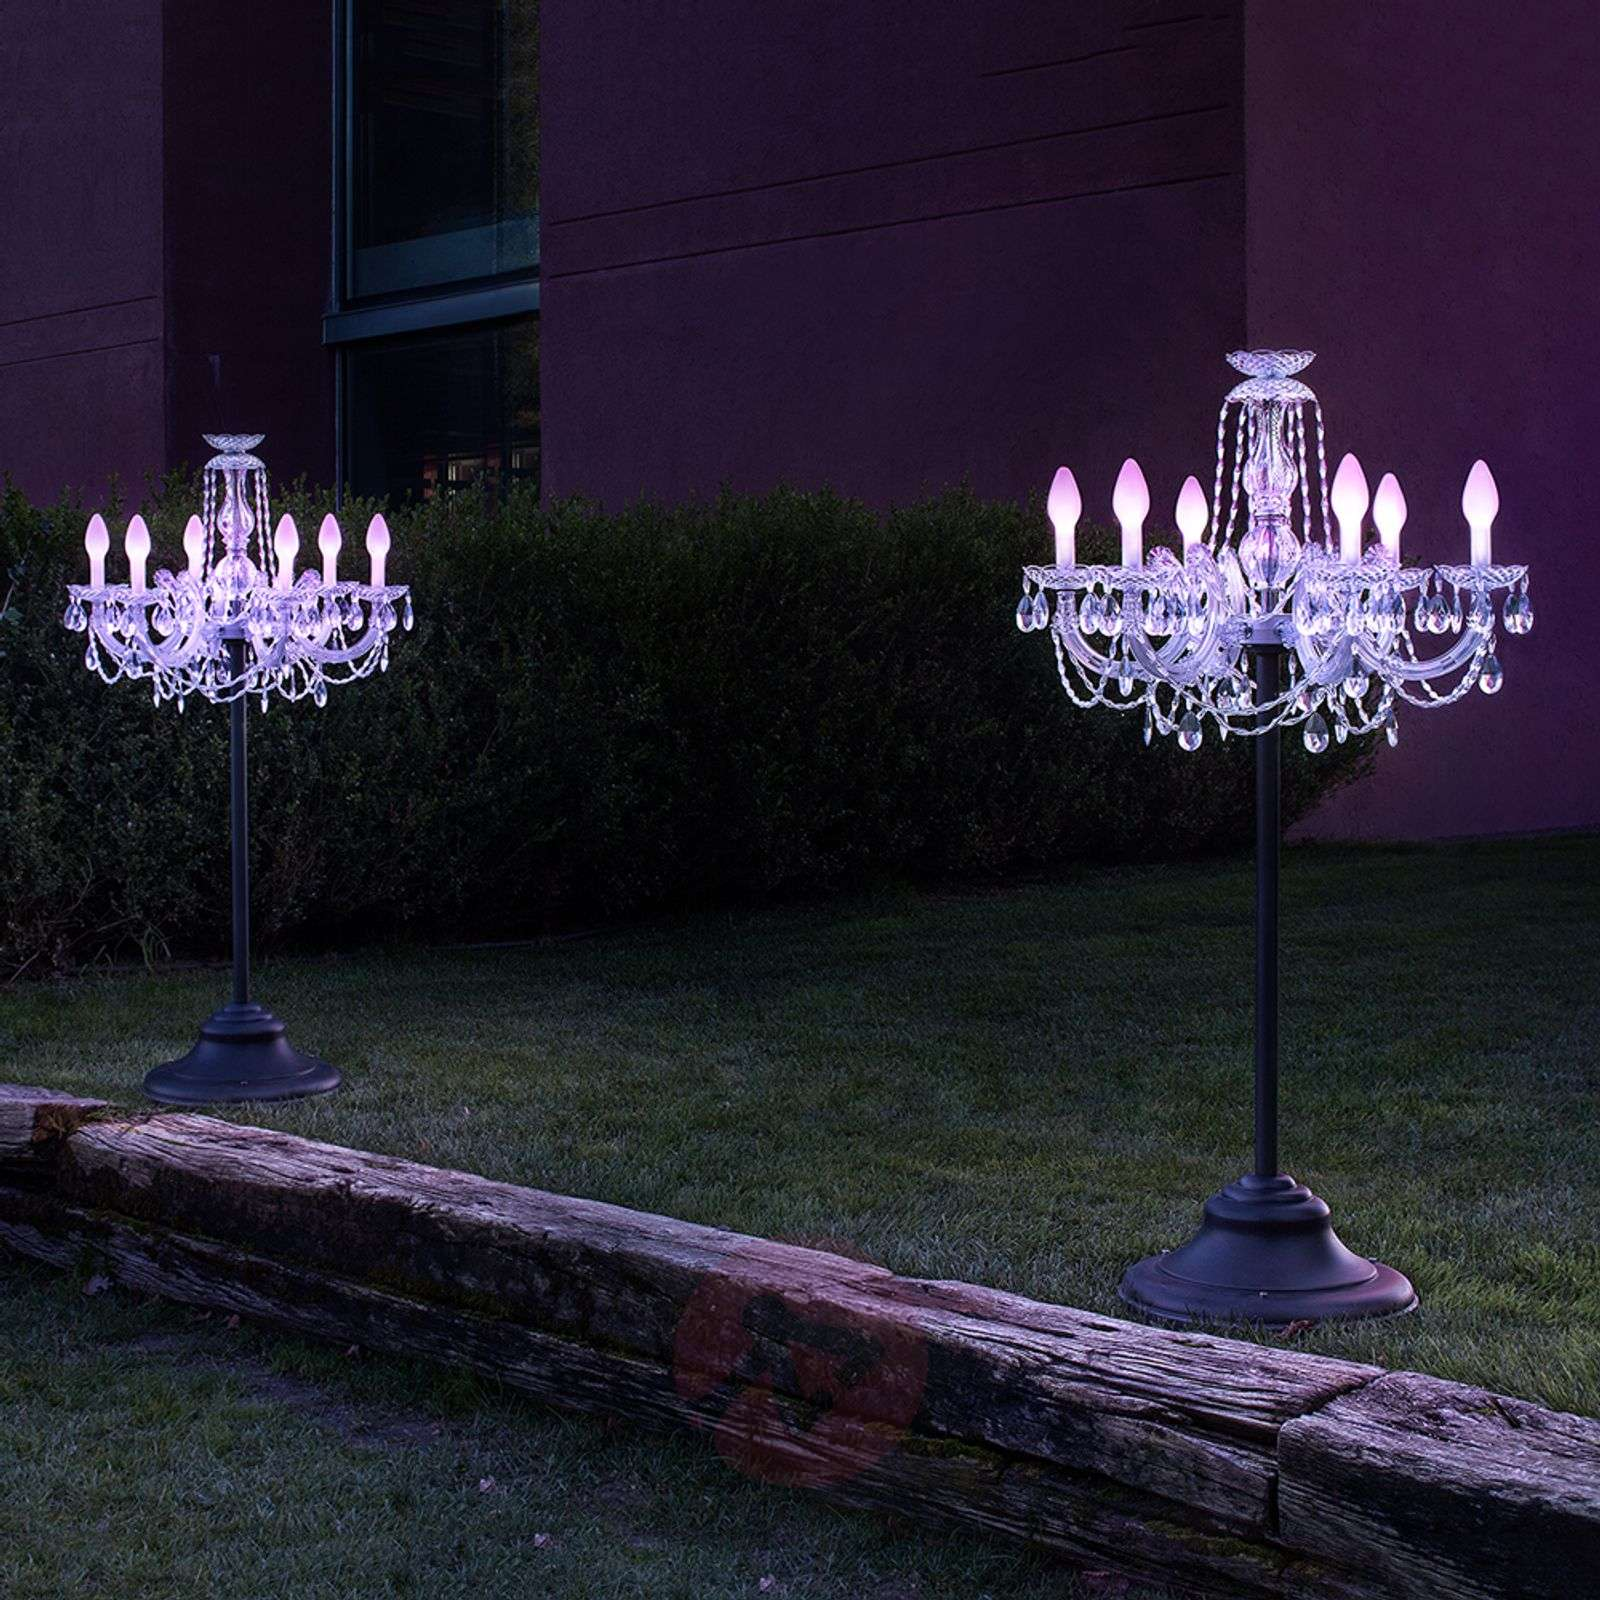 ... Drylight controllable outdoor LED floor l& RGBW-6517267-01 ... & Drylight controllable outdoor LED floor lamp RGBW | Lights.co.uk